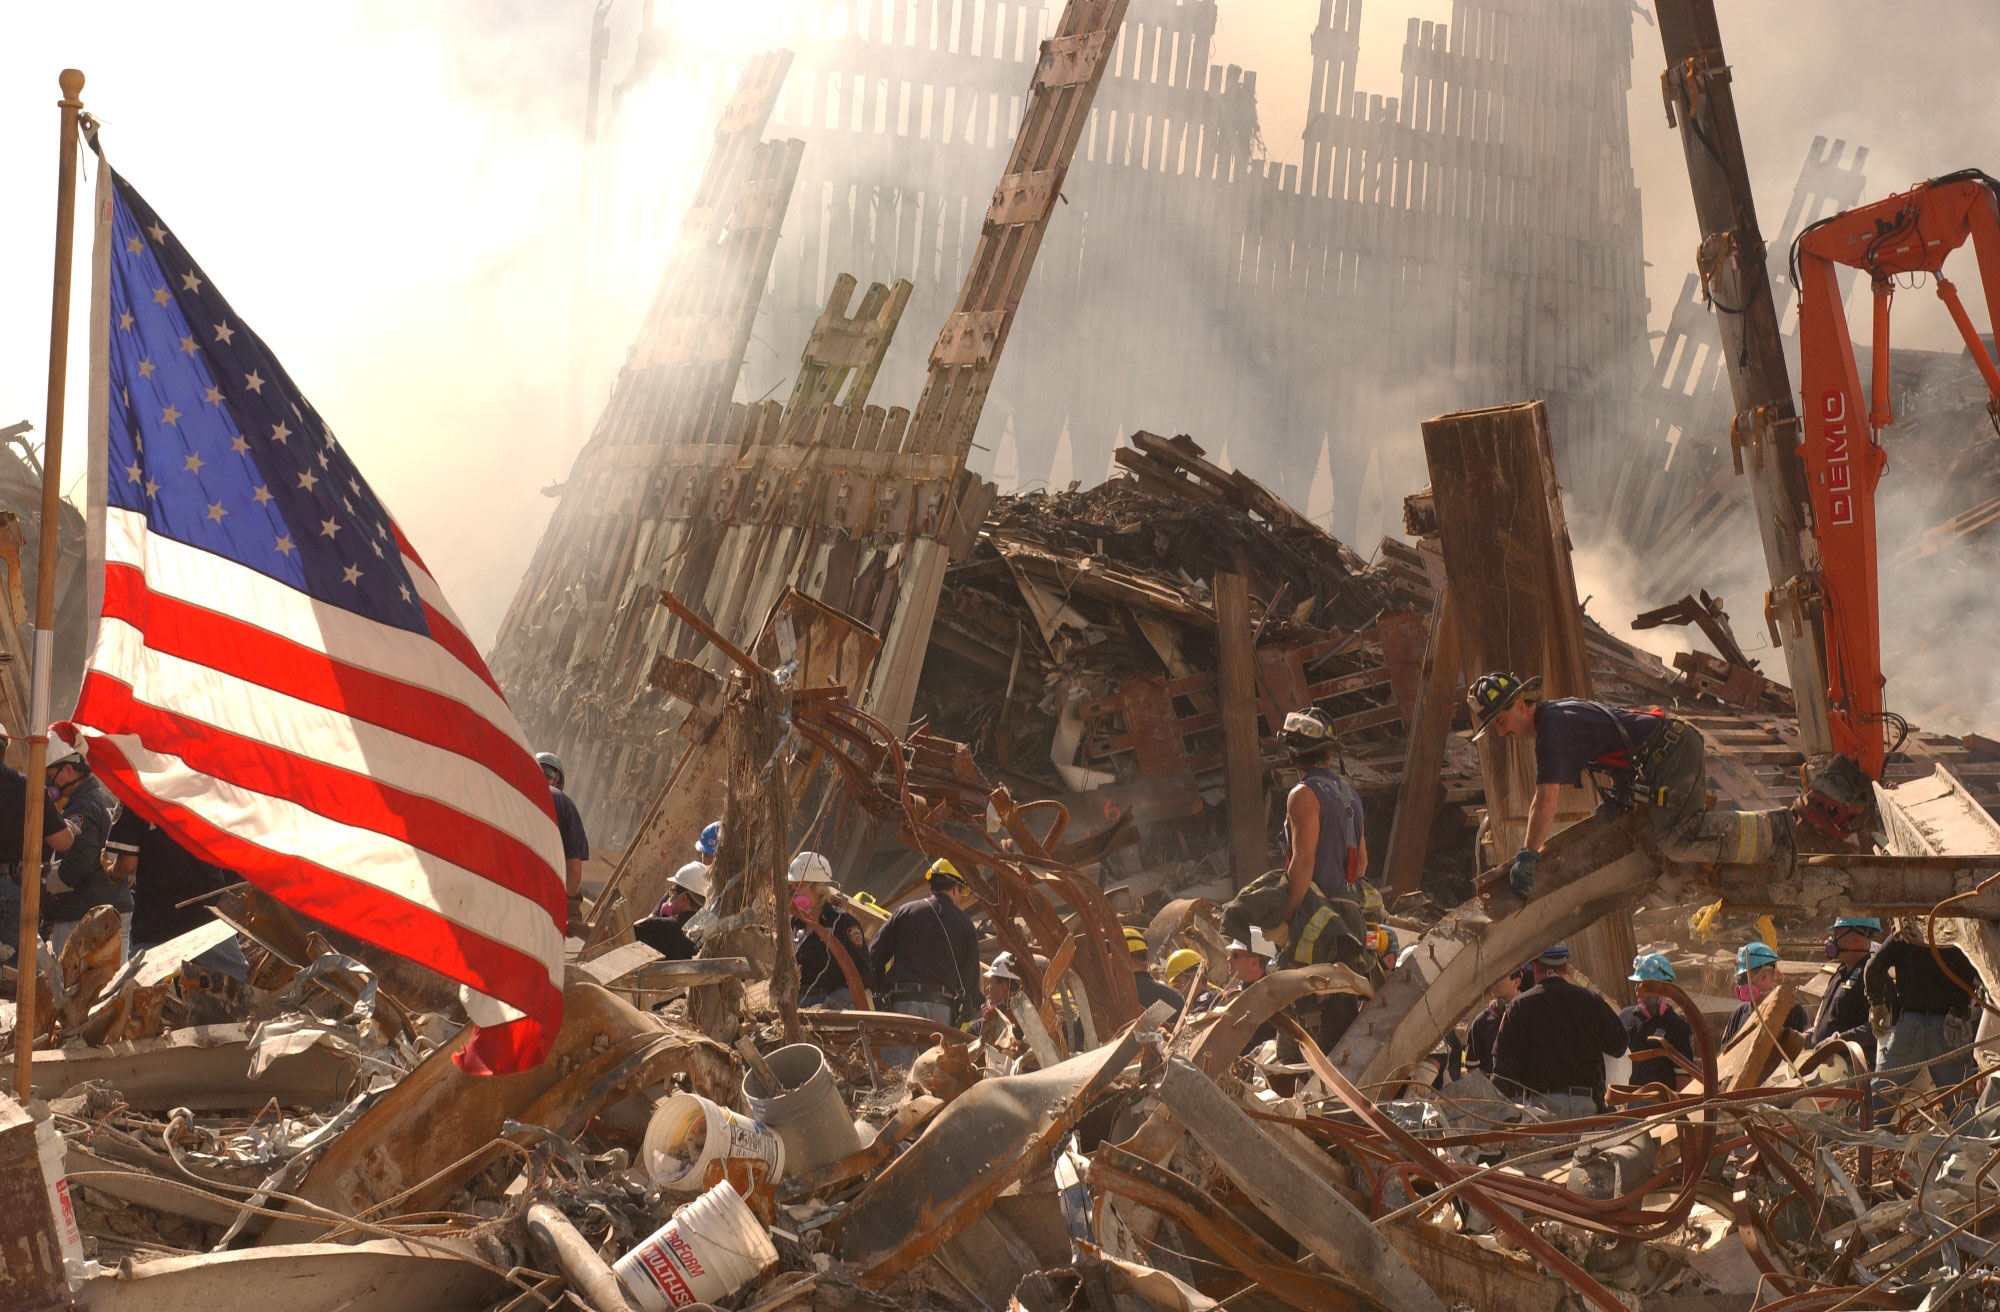 Ground zero photo soon after September 11, 2001, attached on the Twin Towers